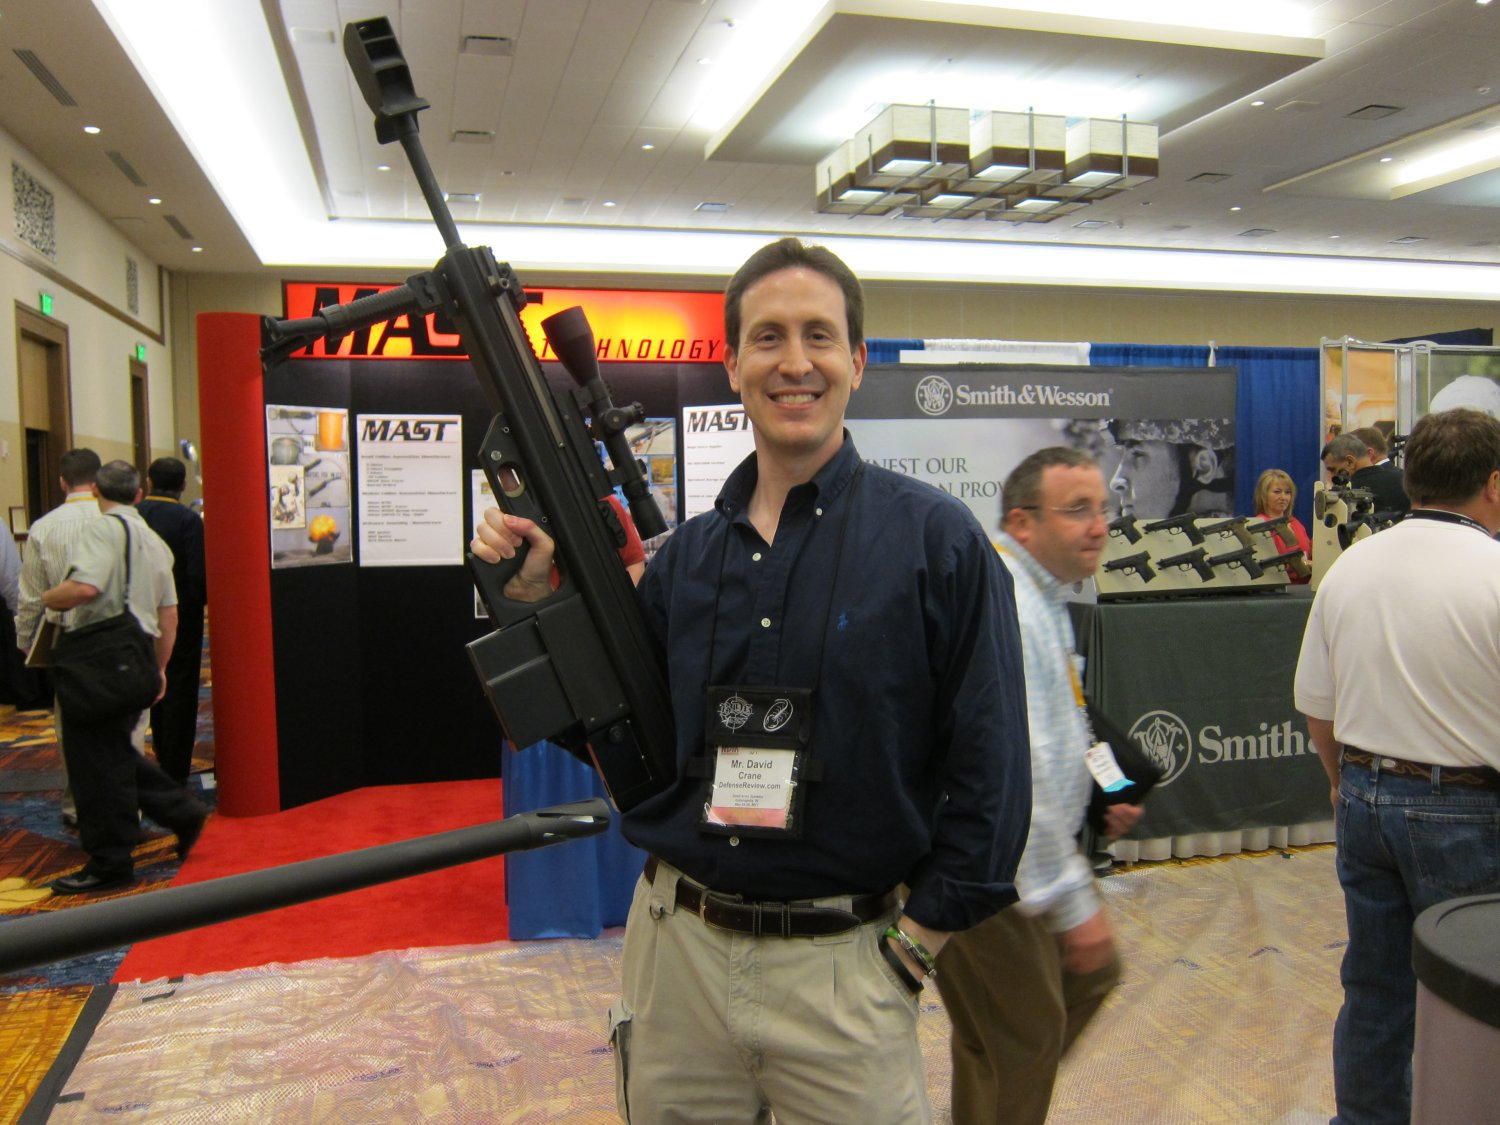 David Crane of DefenseReview.com Holding Micor Leader 50 Lightweight Bullpup Semi Auto .50 BMG Sniper Anti Materiel Rifle NDIA Small Arms Symposium 2011 3 Micor Defense Leader 50 Bullpup .50 BMG Anti Materiel/Sniper Rifle Goes into Production for Civilian Tactical Shooters: Shortest, Lightest .50 Caliber Sniper Rifle Ever?